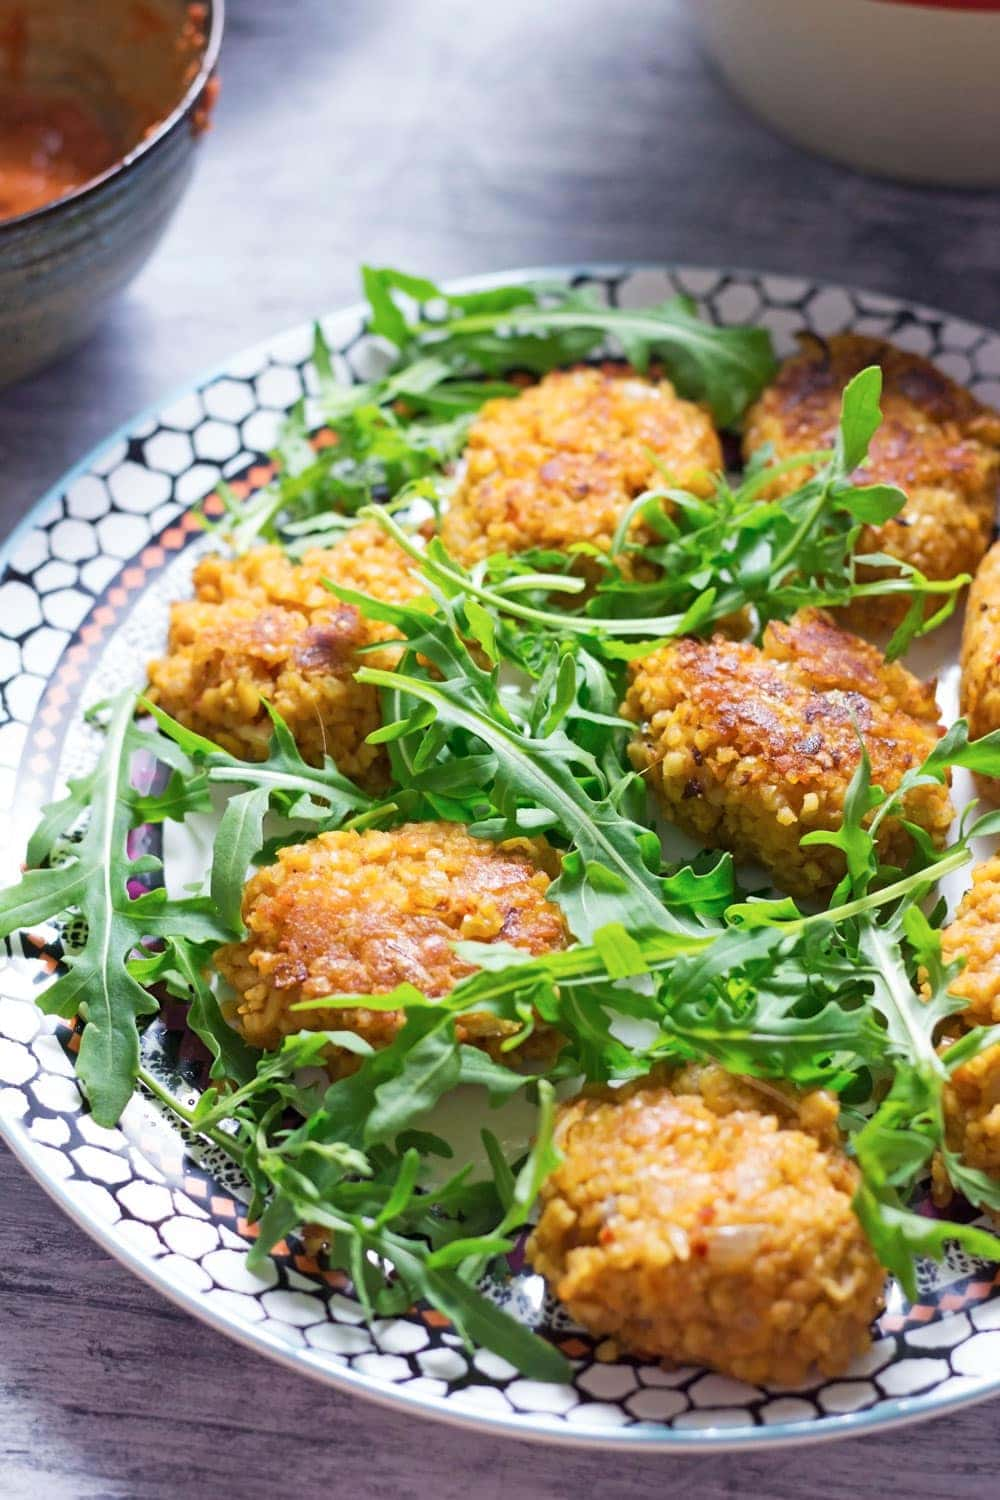 Turkish Lentil and Bulgur Wheat Patties with Salad • The Cook Report